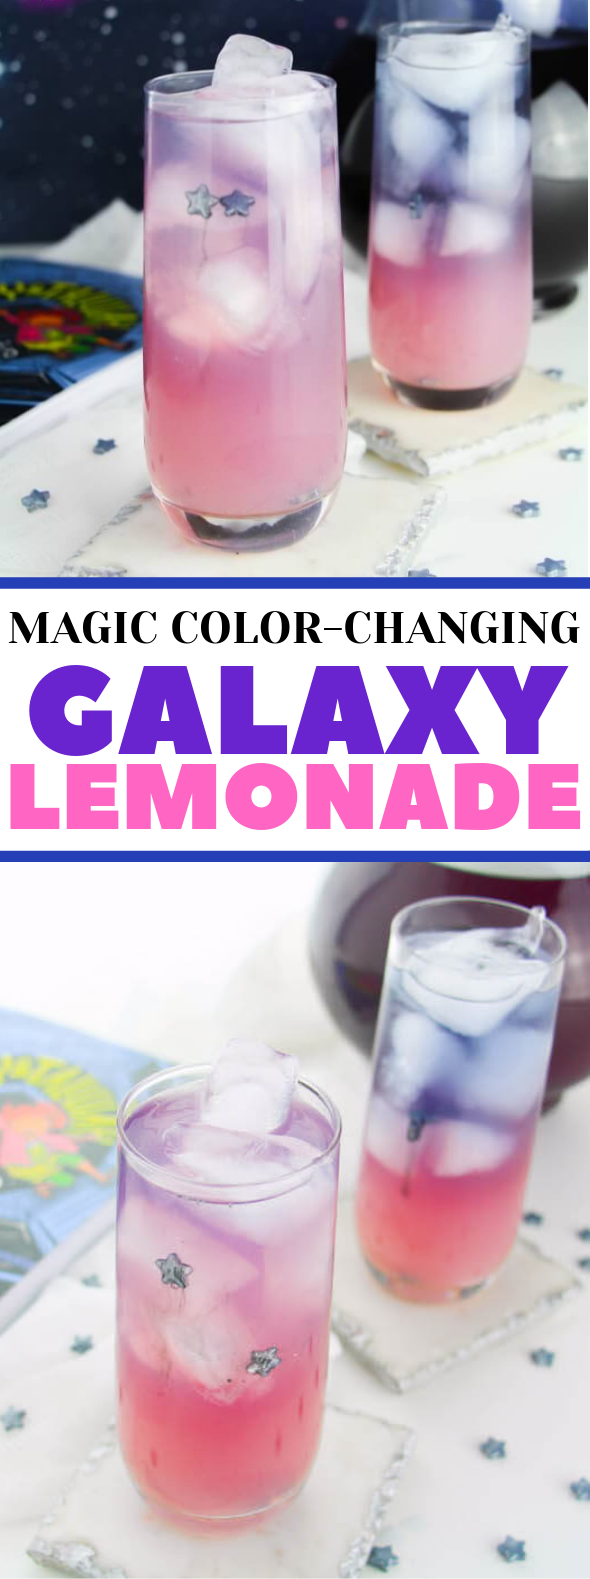 MAGIC COLOR-CHANGING GALAXY LEMONADE #drink #cocktail